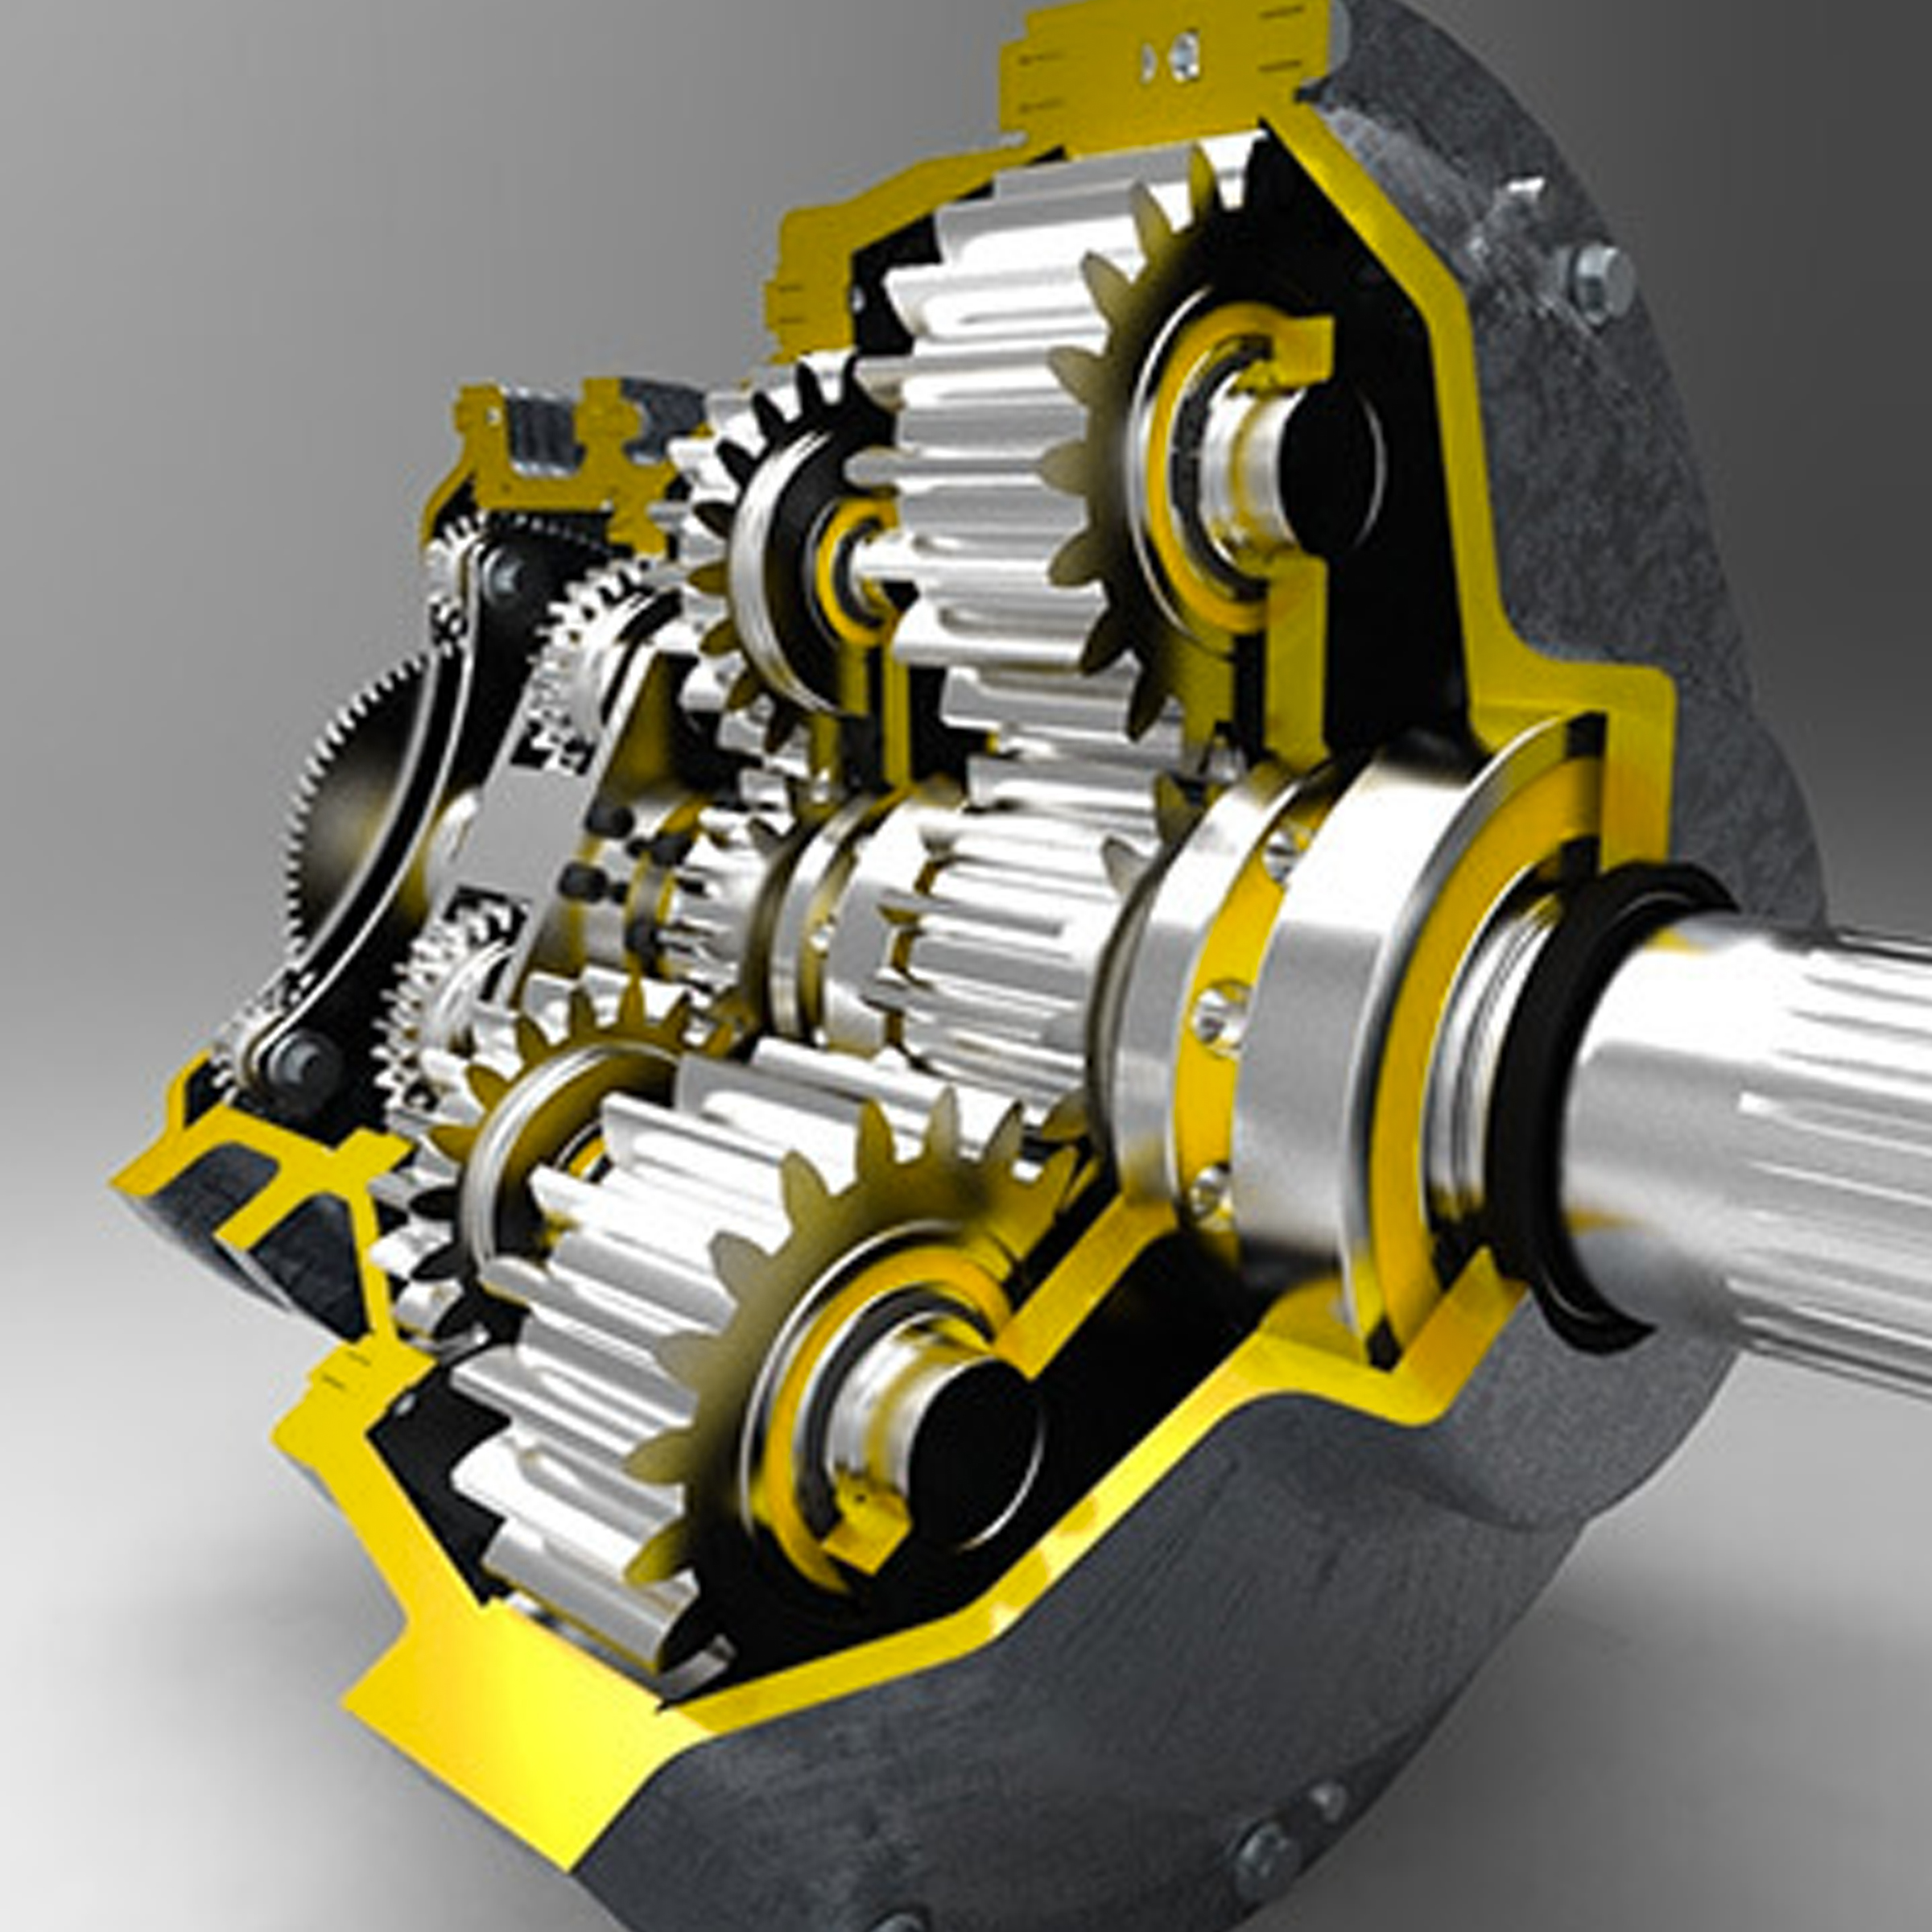 MECHANICAL ENGINEERING 3D ANIMATION VIDEO